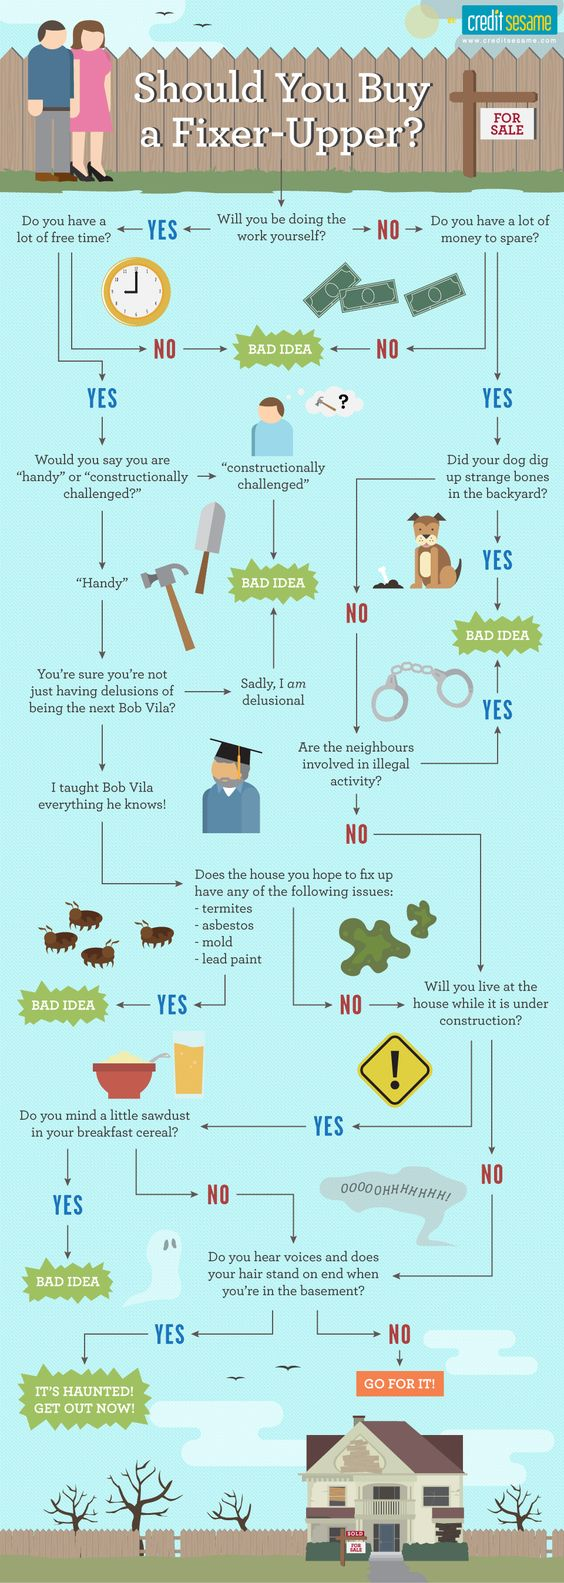 infographic-should you buy a fixer